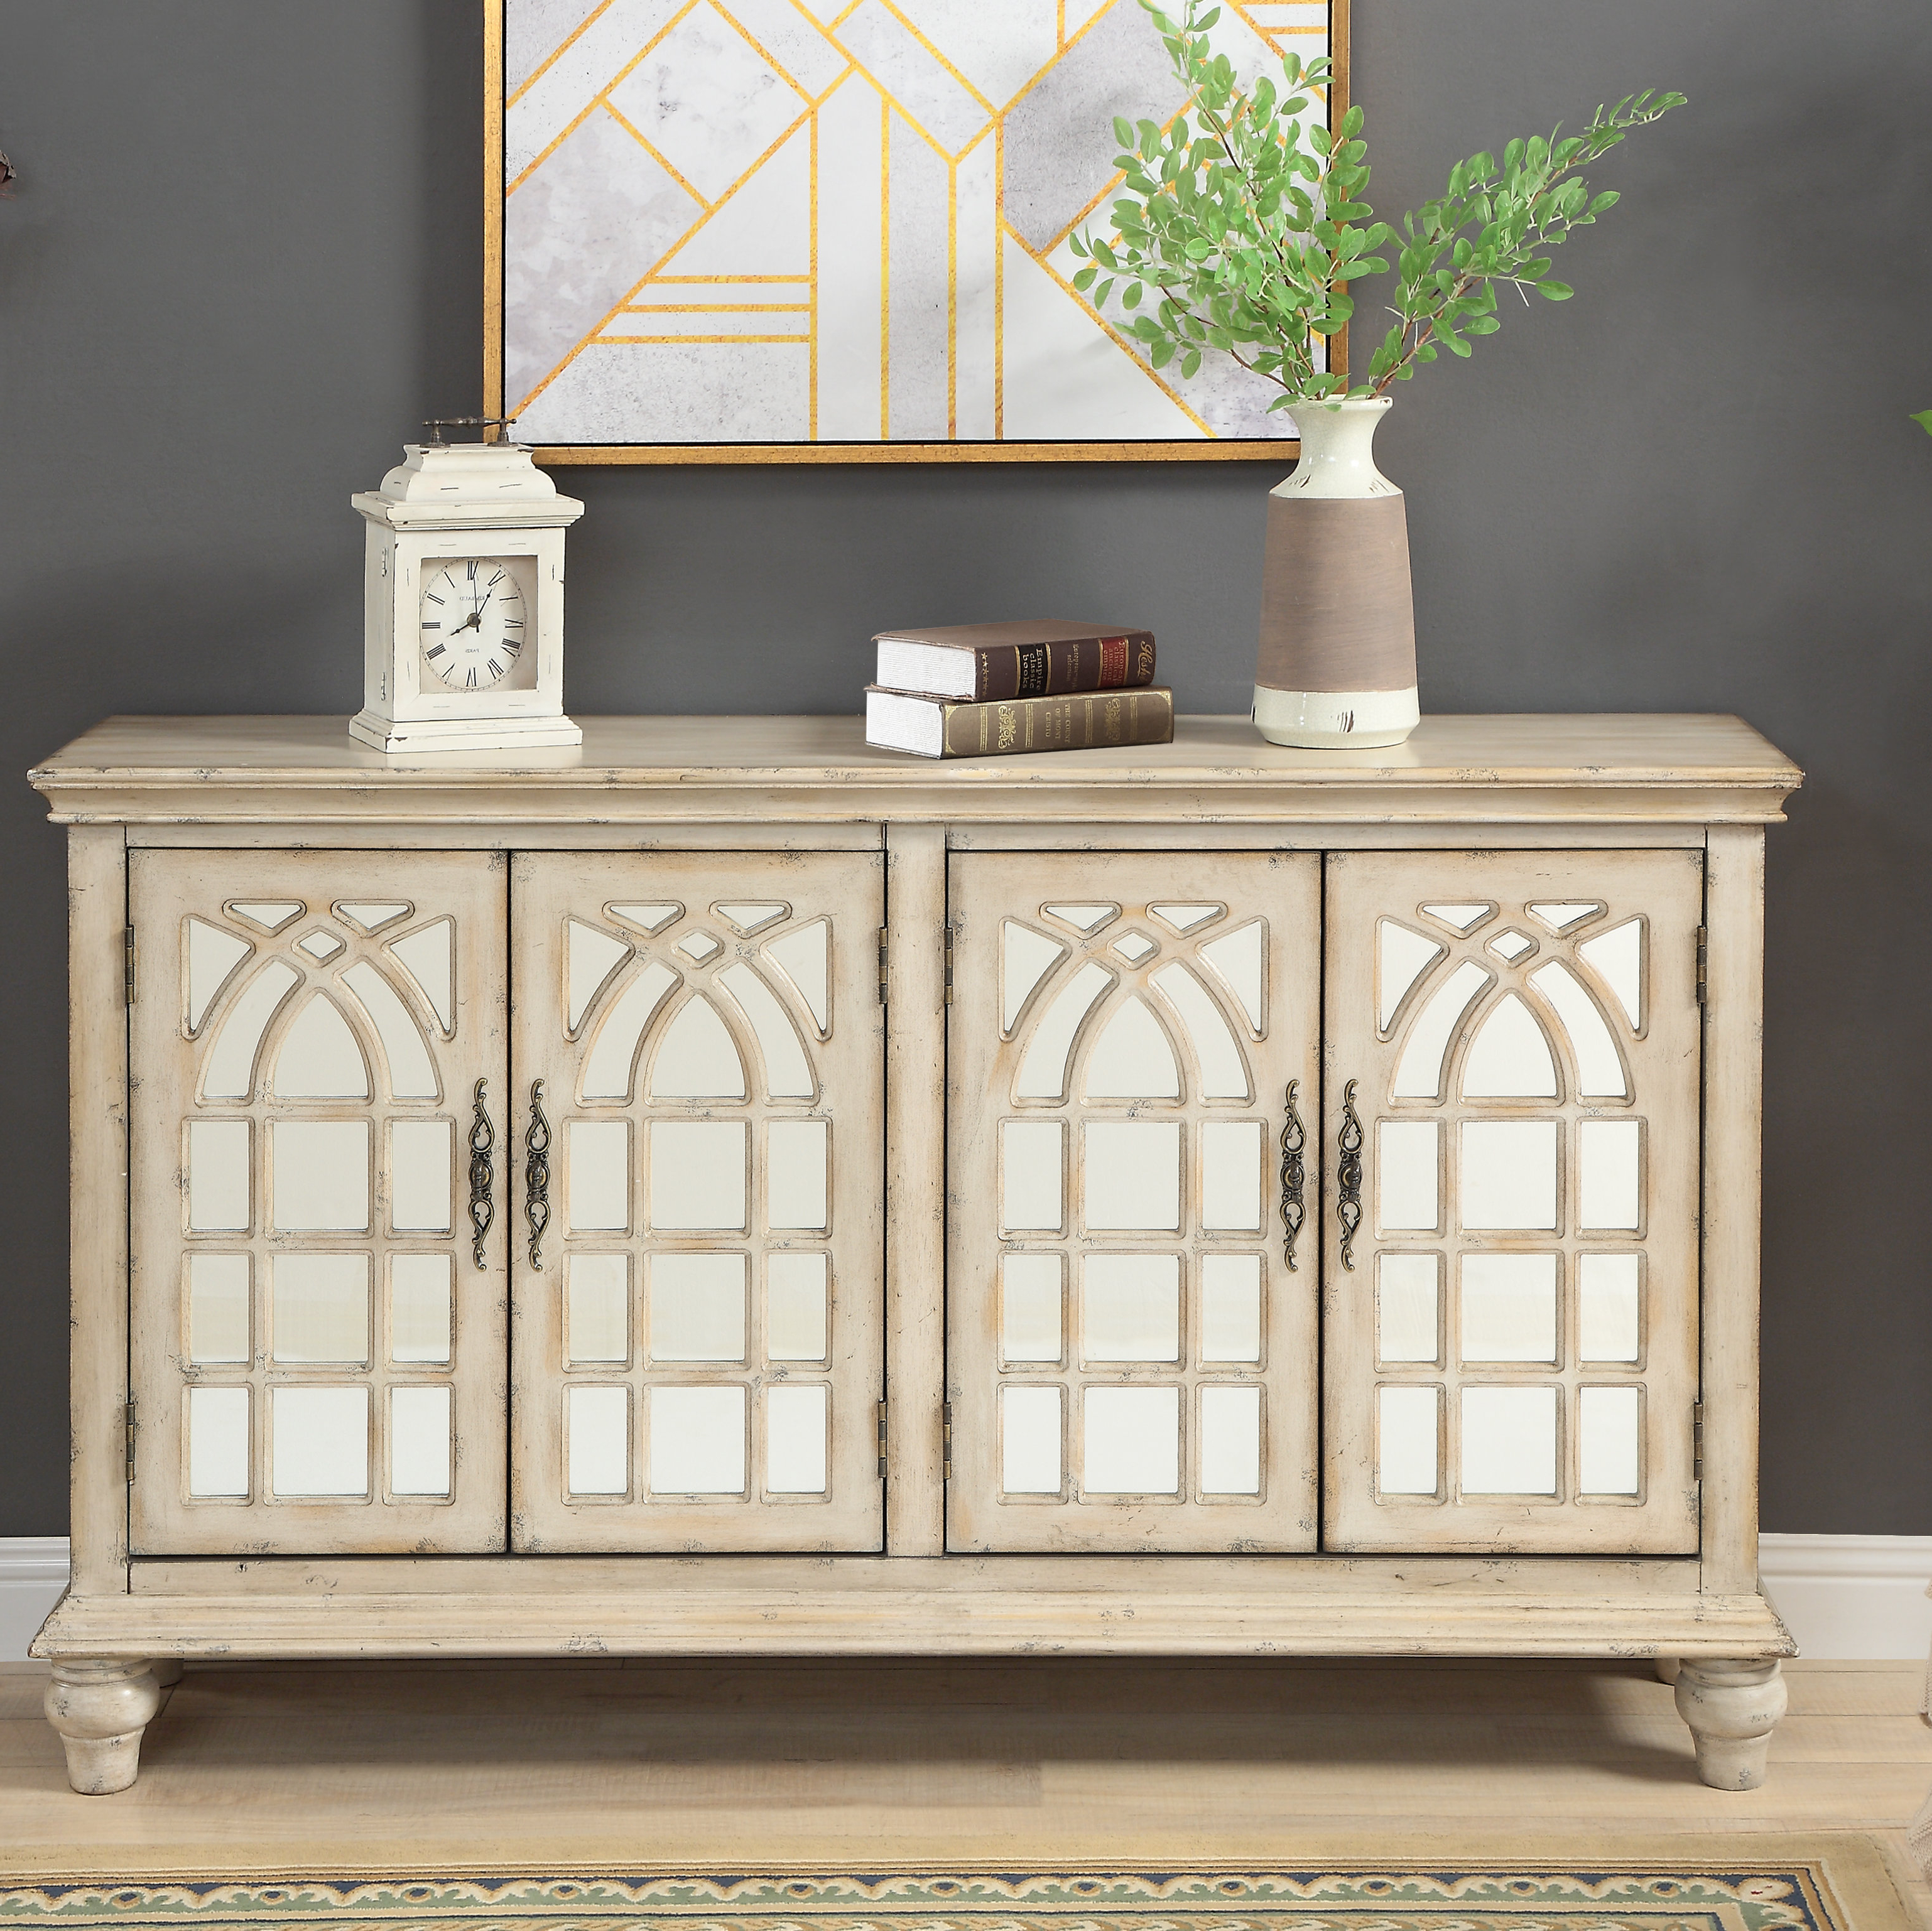 Favorite Farmhouse & Rustic One Allium Way Sideboards & Buffets Within Fugate 2 Door Credenzas (View 8 of 20)